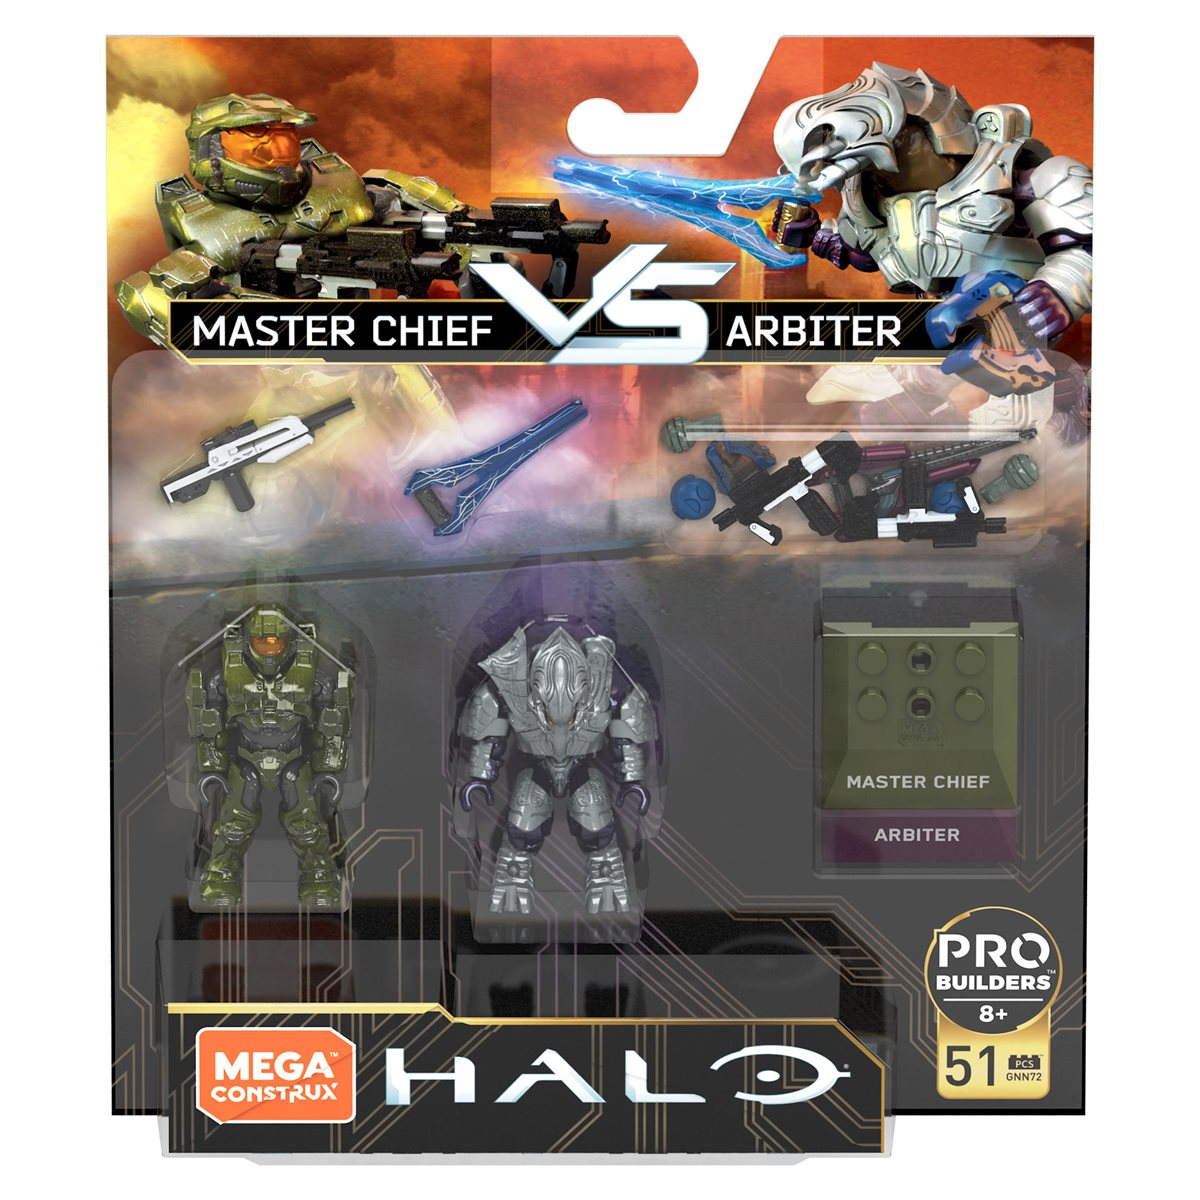 MEGA BLOKS+Construx HALO PRO BUILDERS SERIES WAVE 10 MINI FIG Master Chief NEW